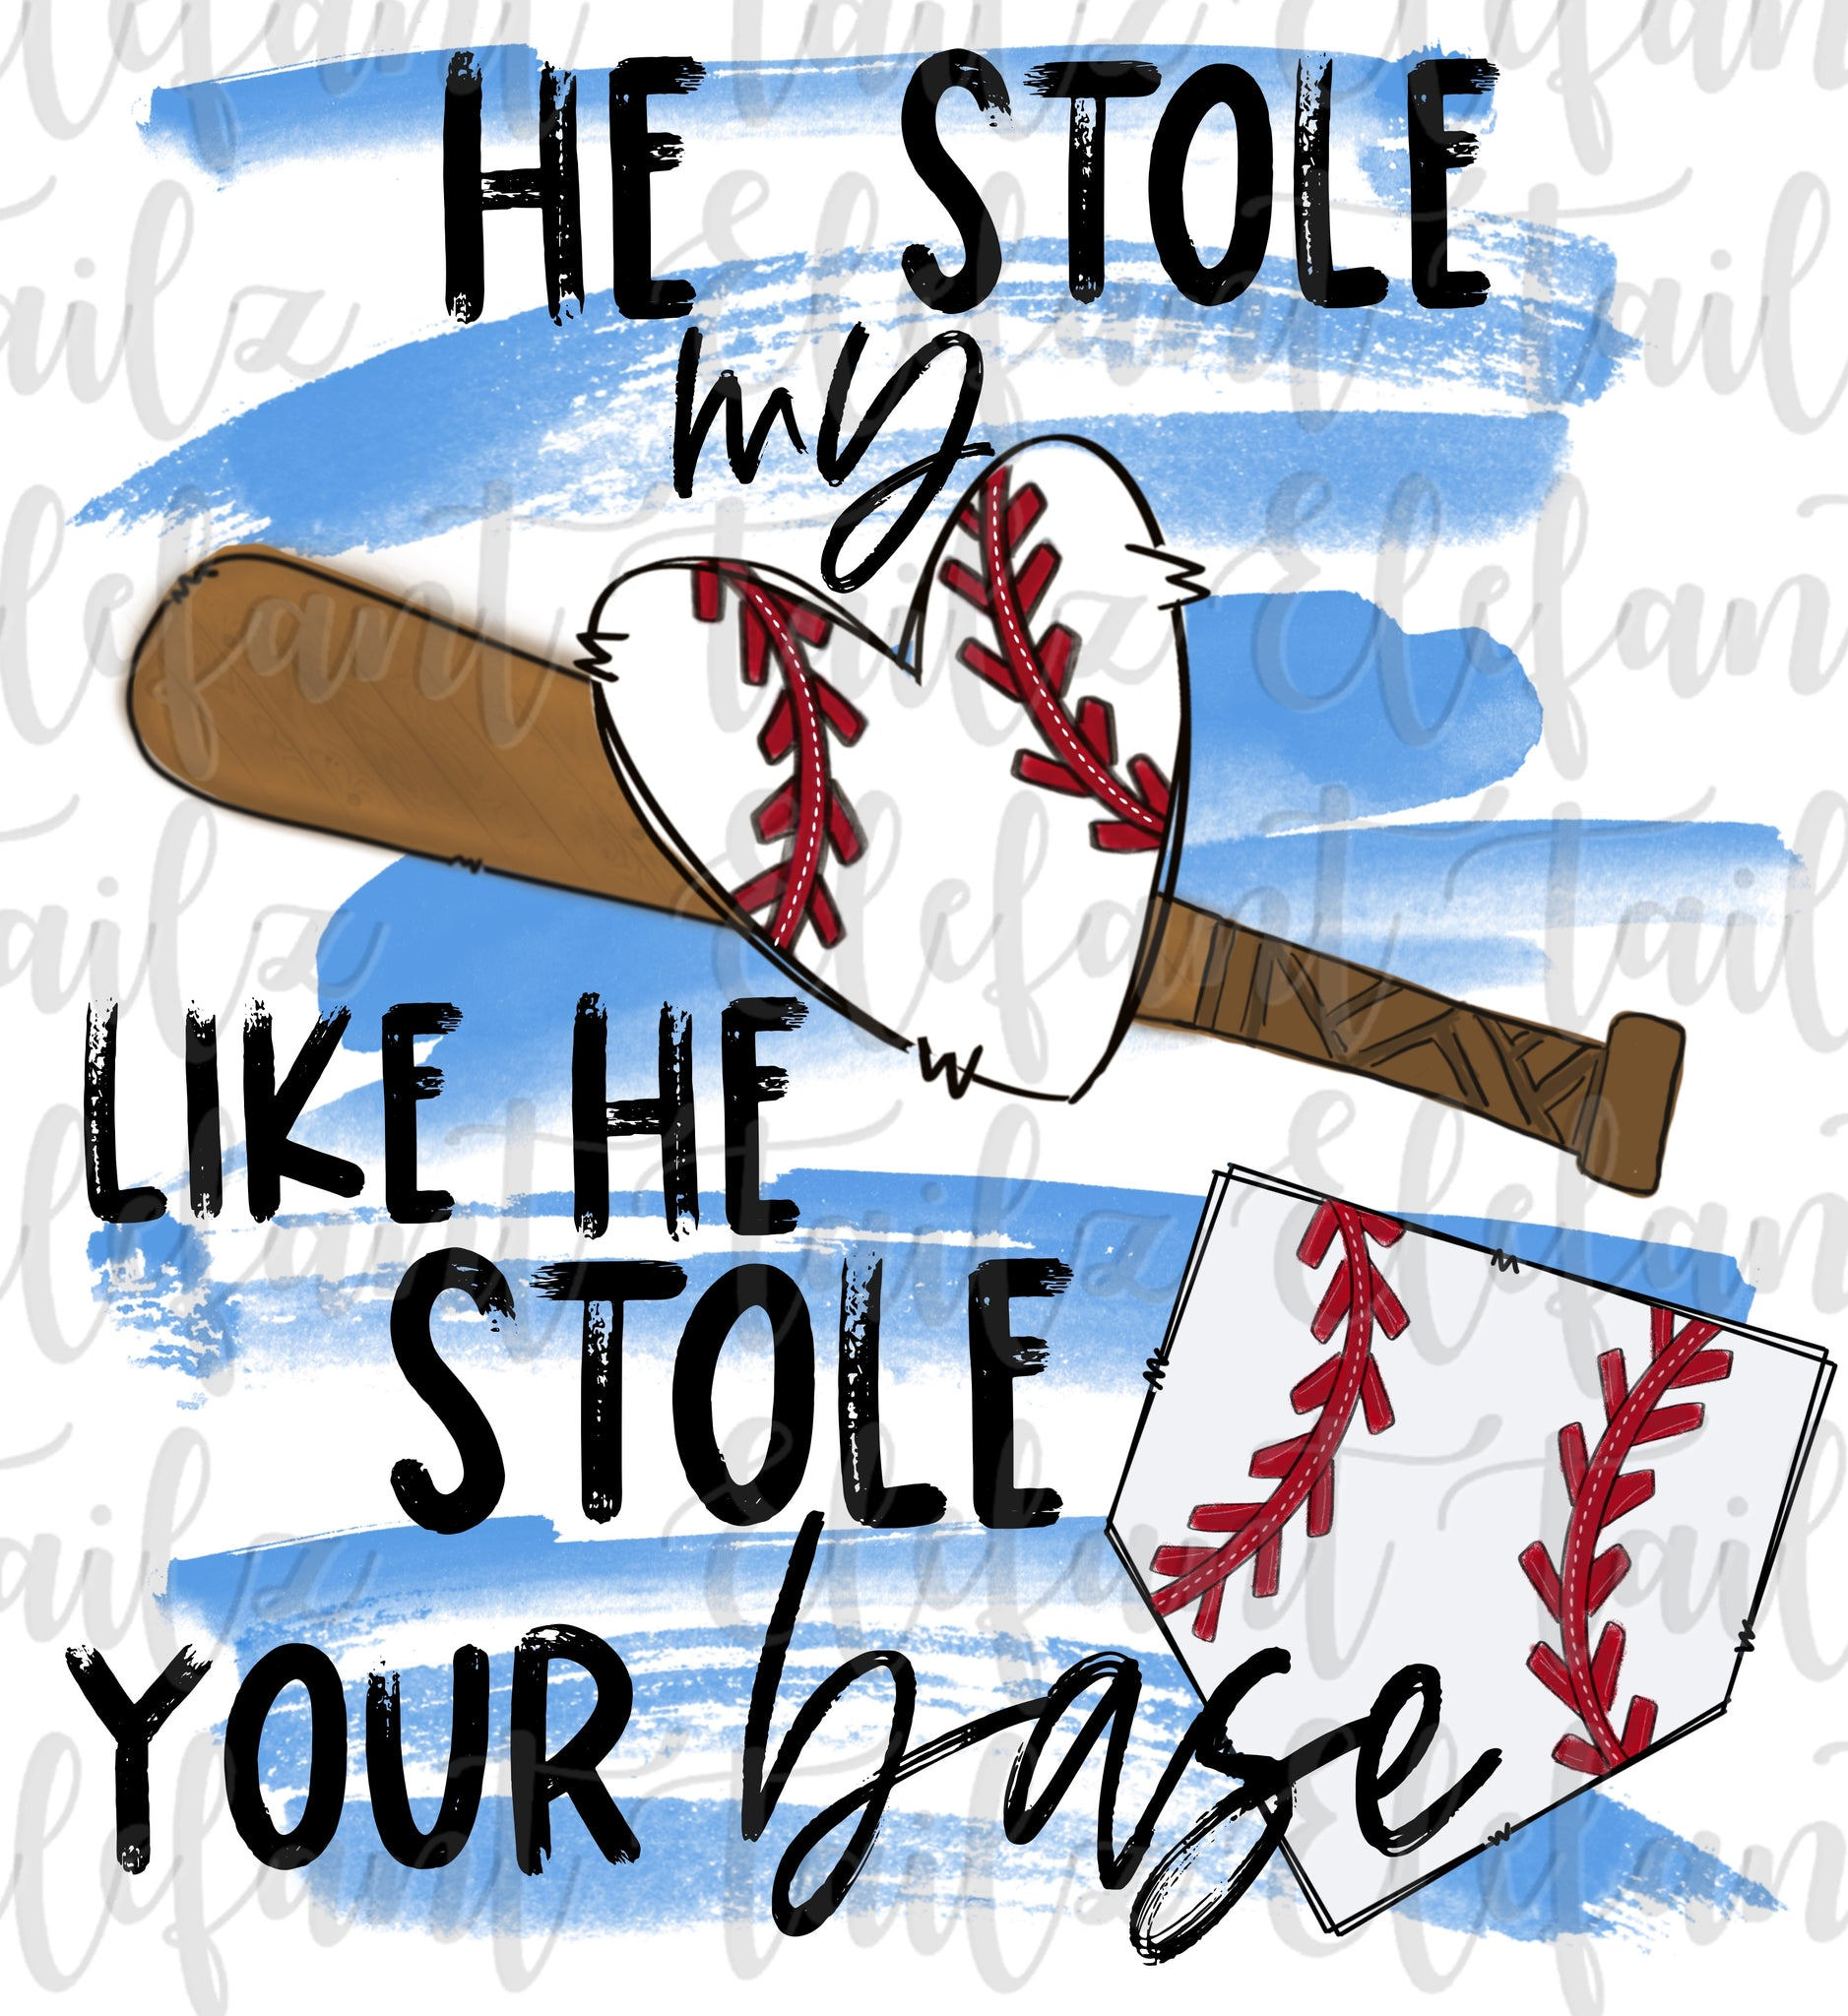 Baseball Stolen Heart Stolen Base